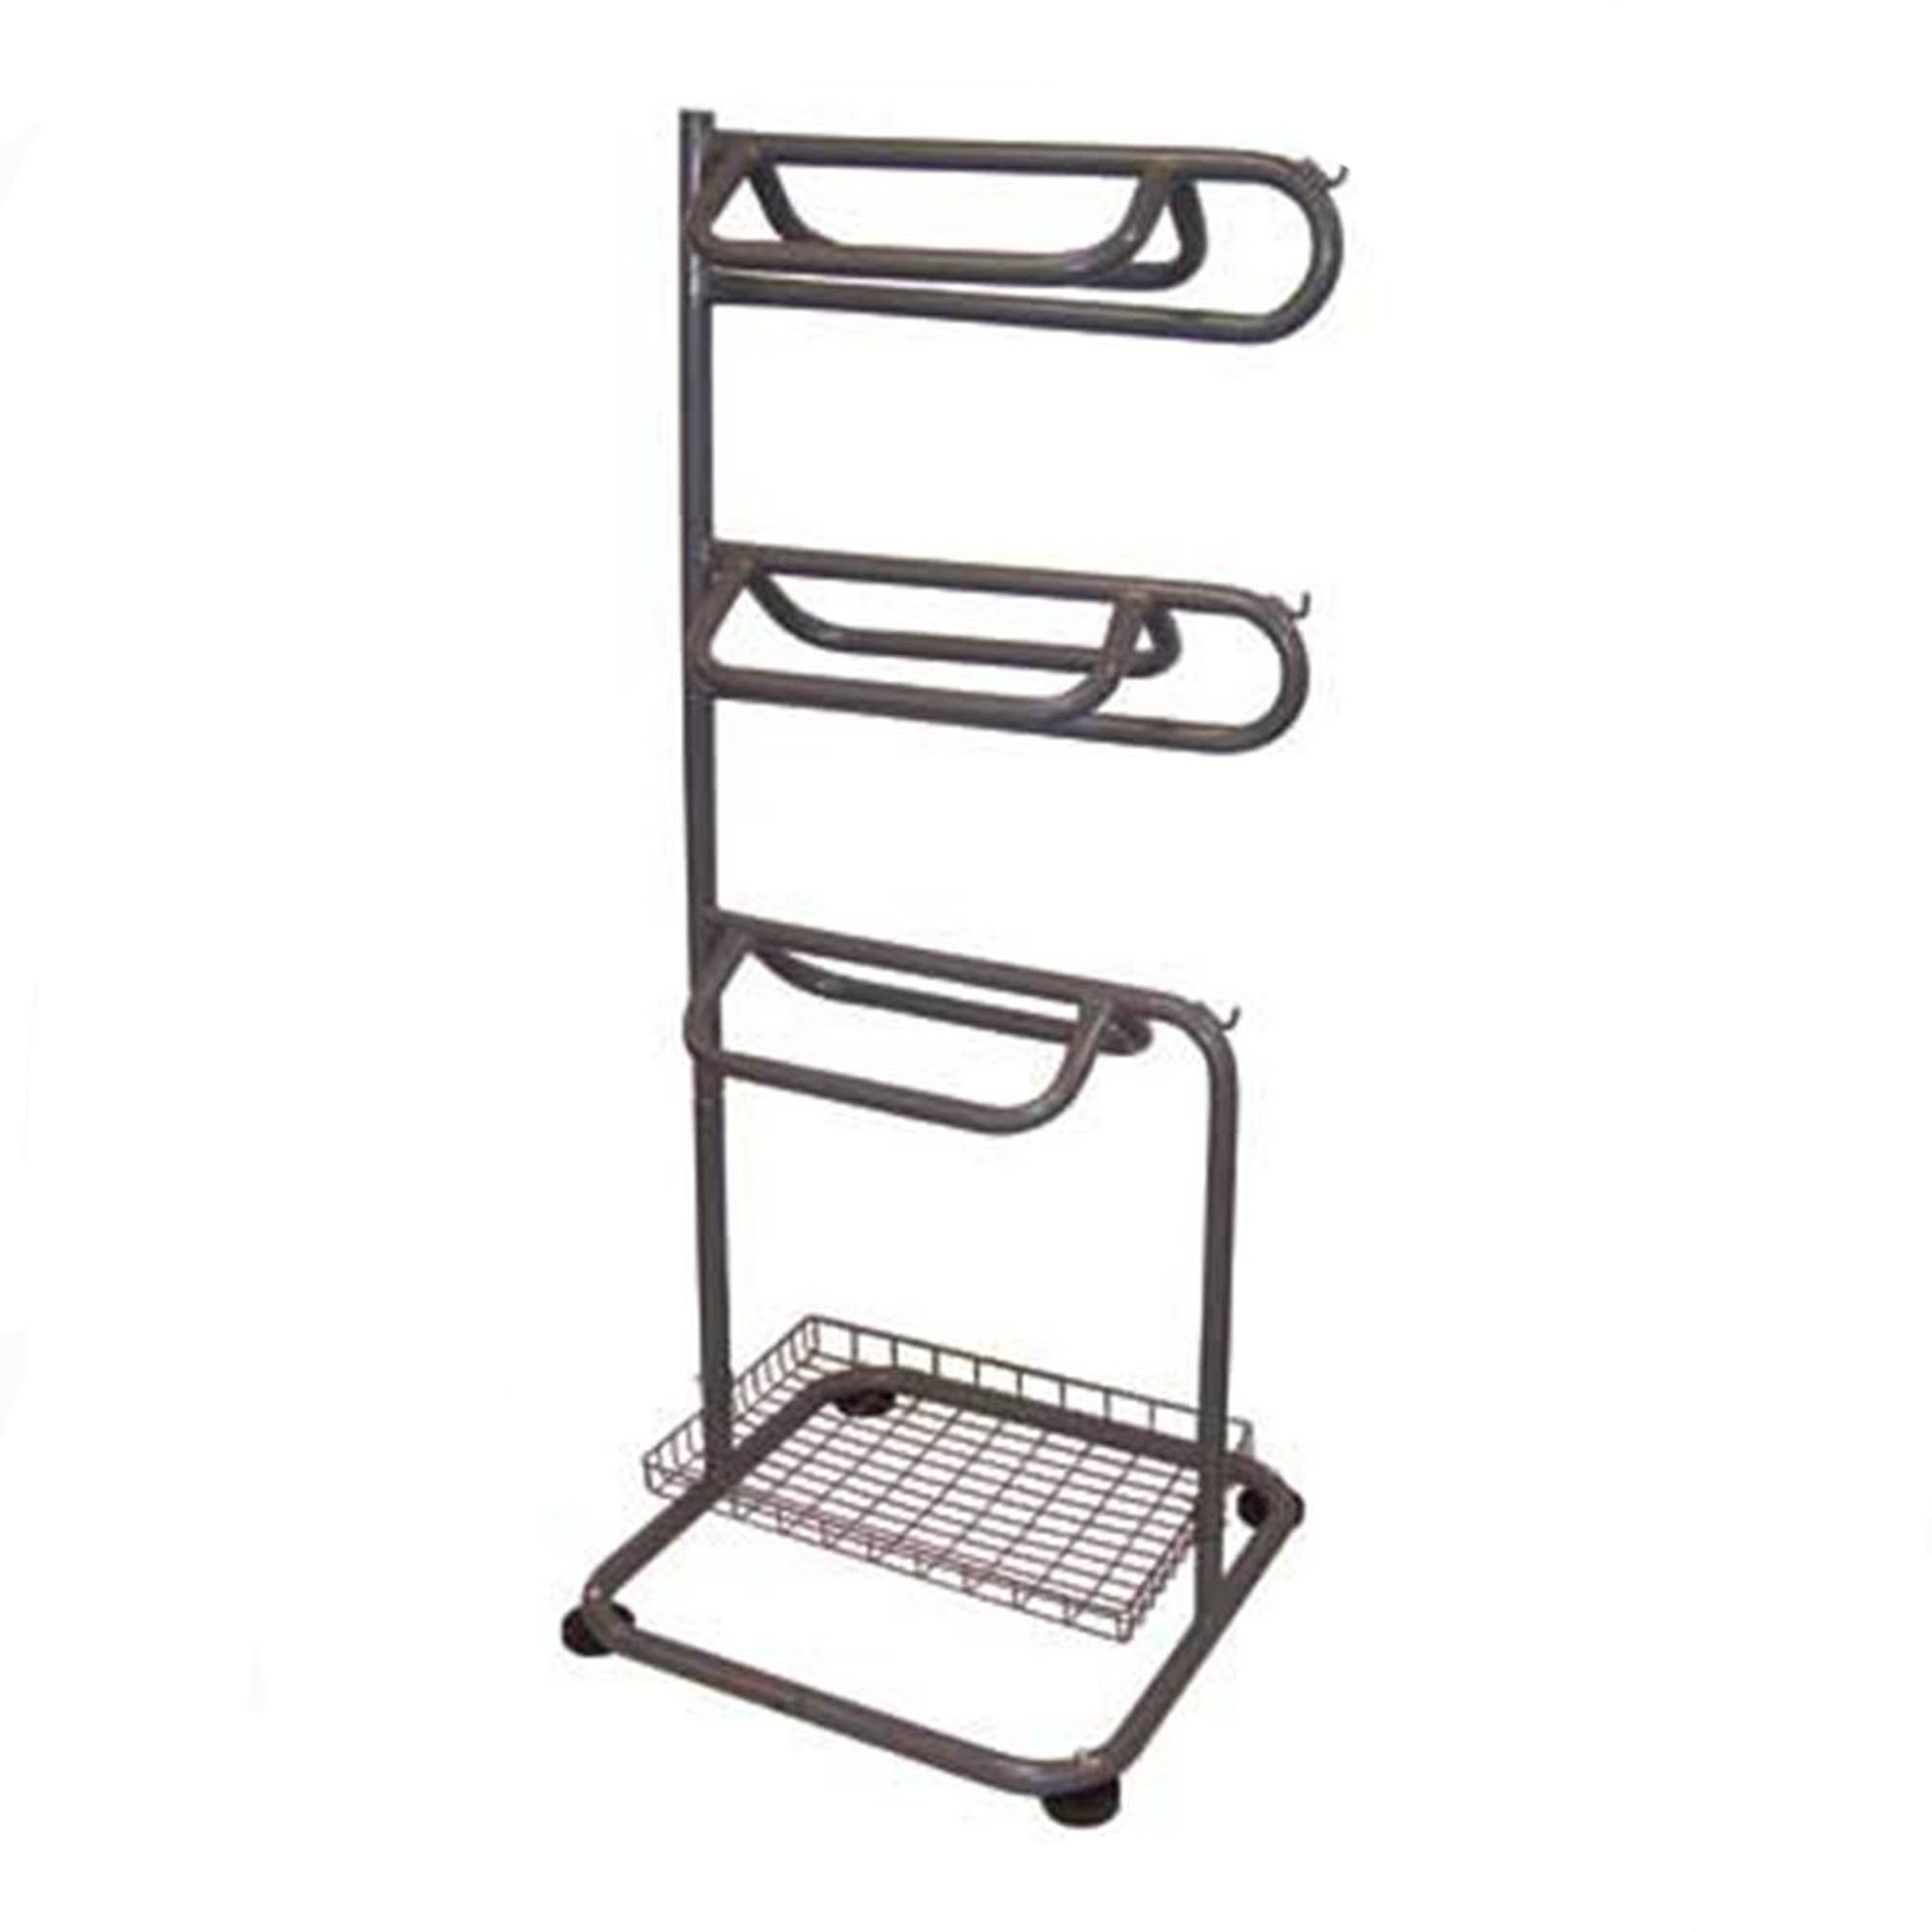 BACKYARD EXPRESSIONS PATIO · HOME · GARDEN 909094 3-Tier Saddle Rack with Accessory Basket, One Size by BACKYARD EXPRESSIONS PATIO · HOME · GARDEN